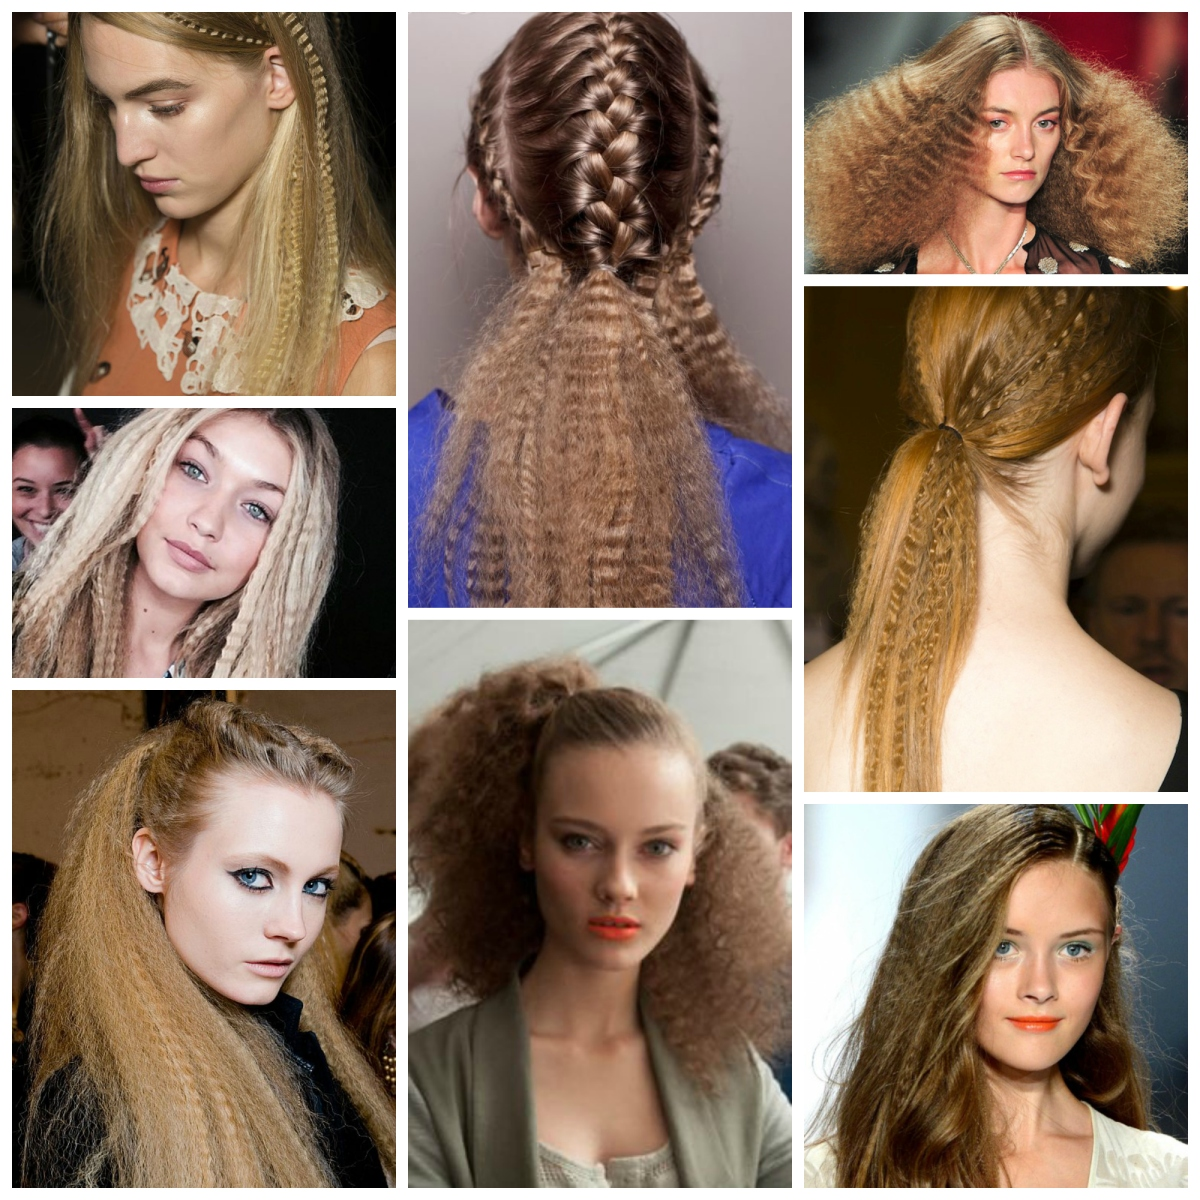 2015 hair trend - The new Crimp!